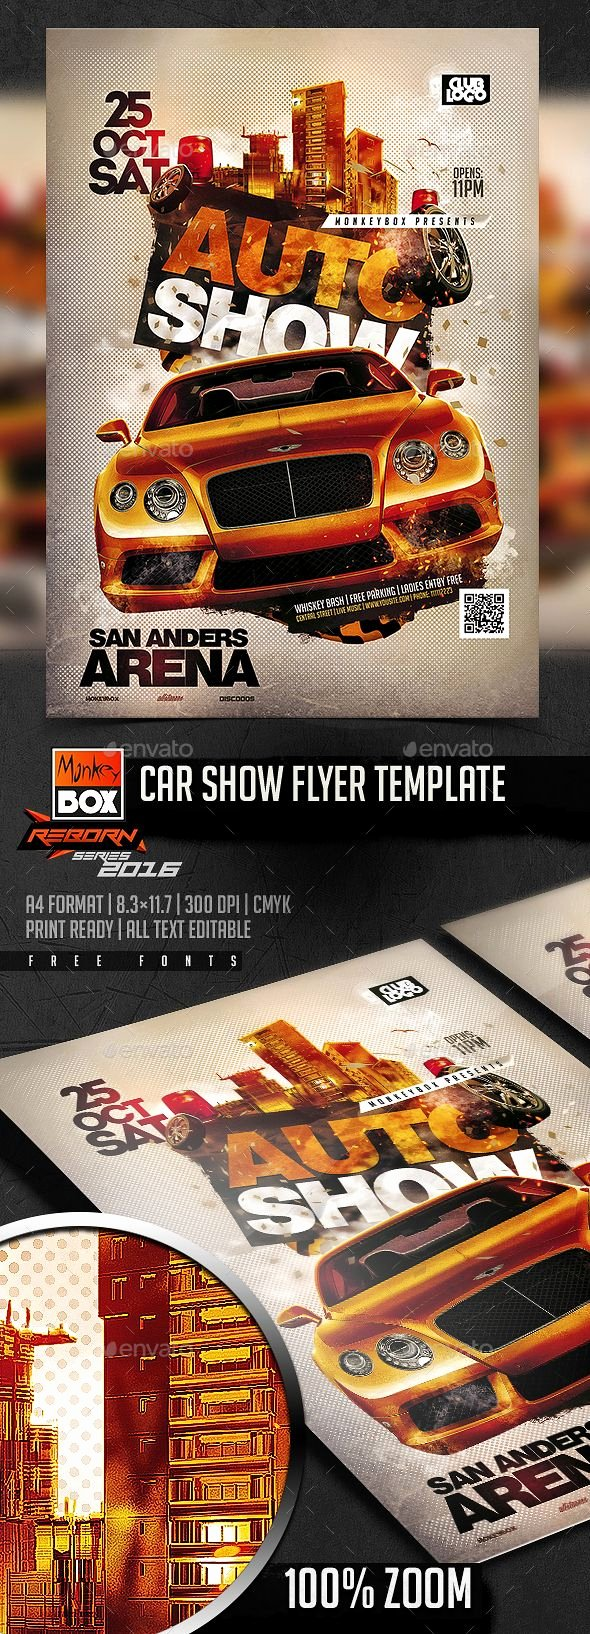 Blank Car Show Flyer Best Of Car Show Flyer Template